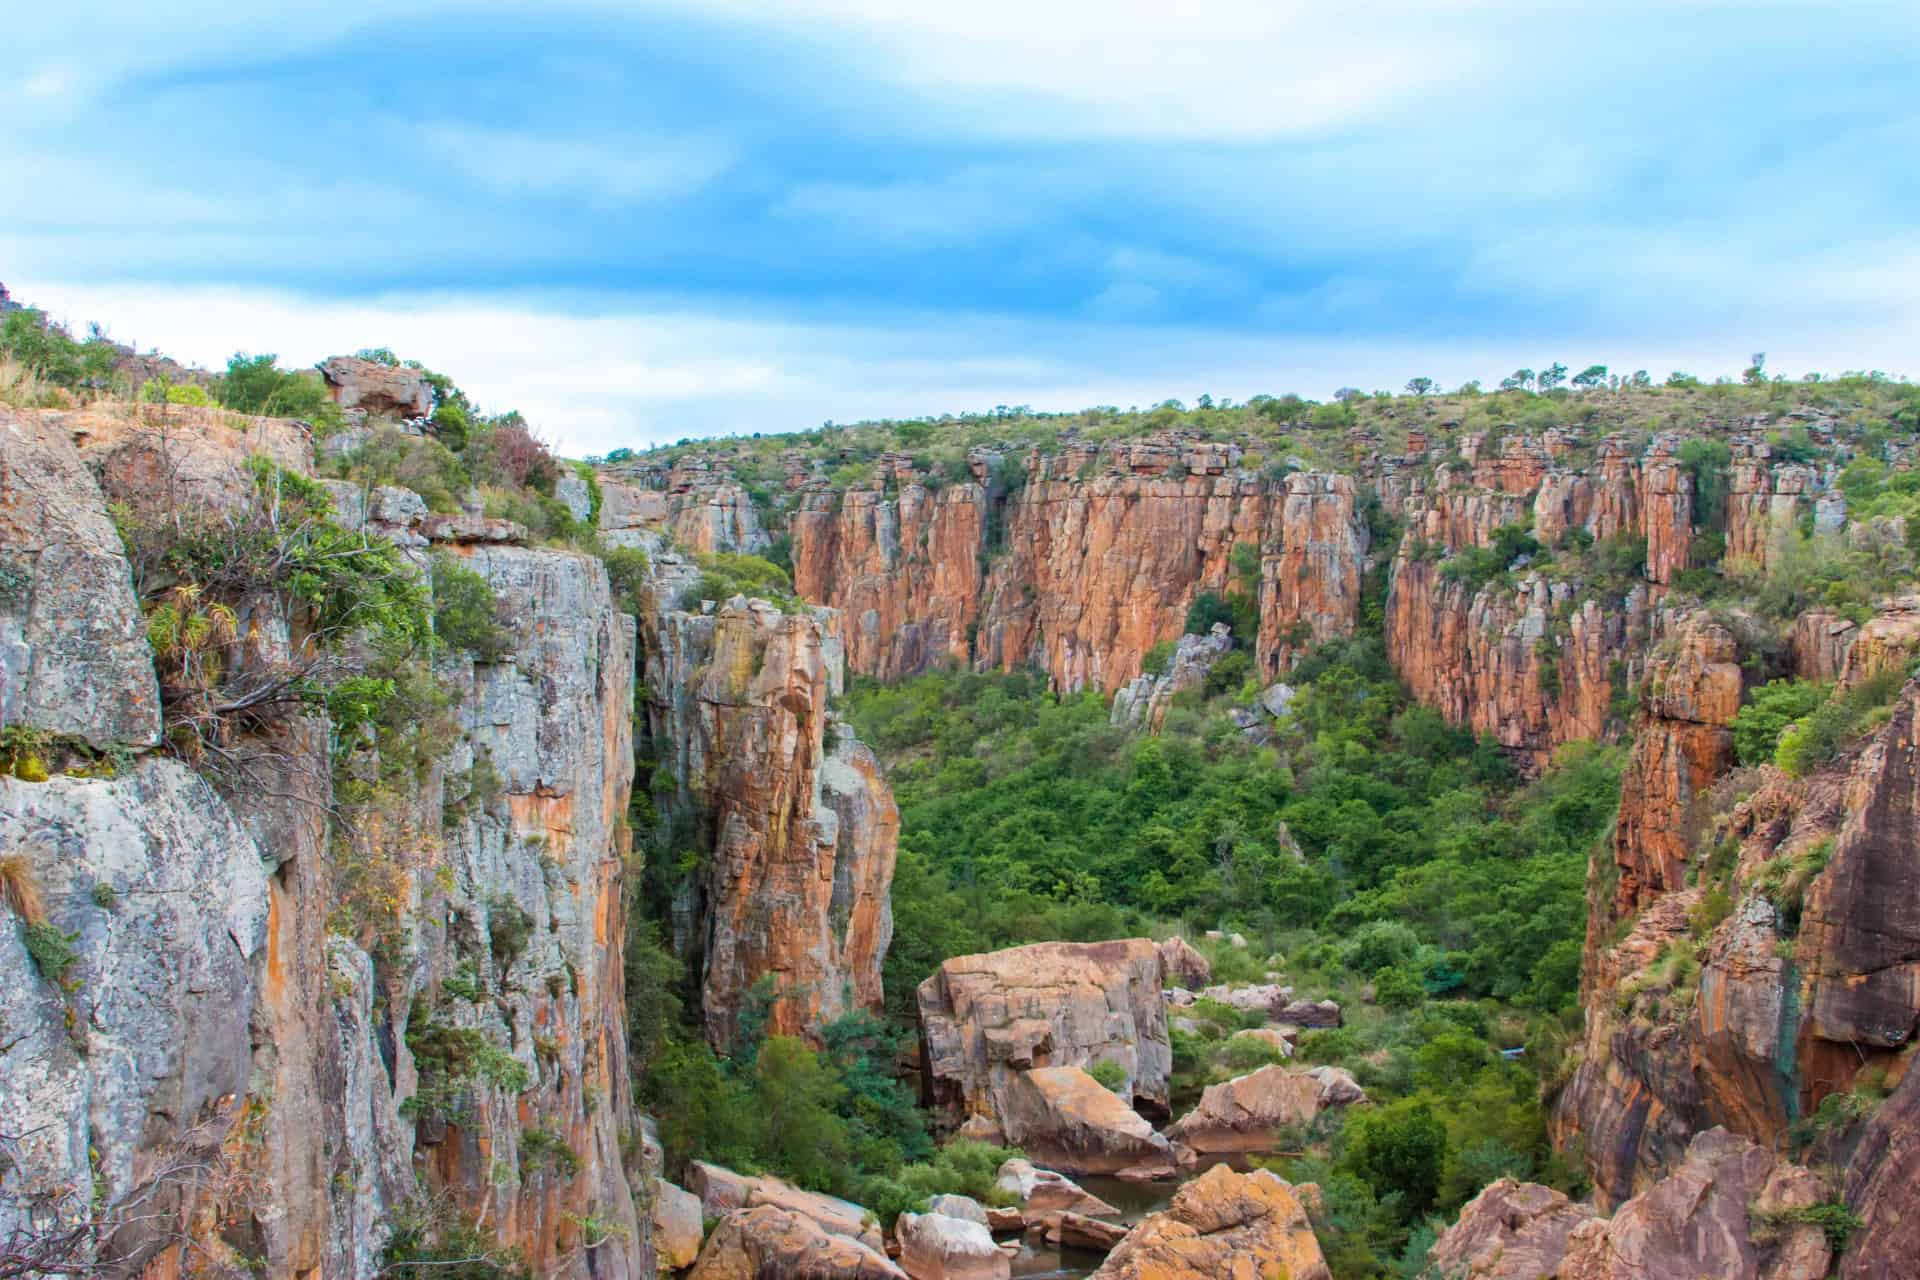 The Blyde River Canyon Nature Reserve